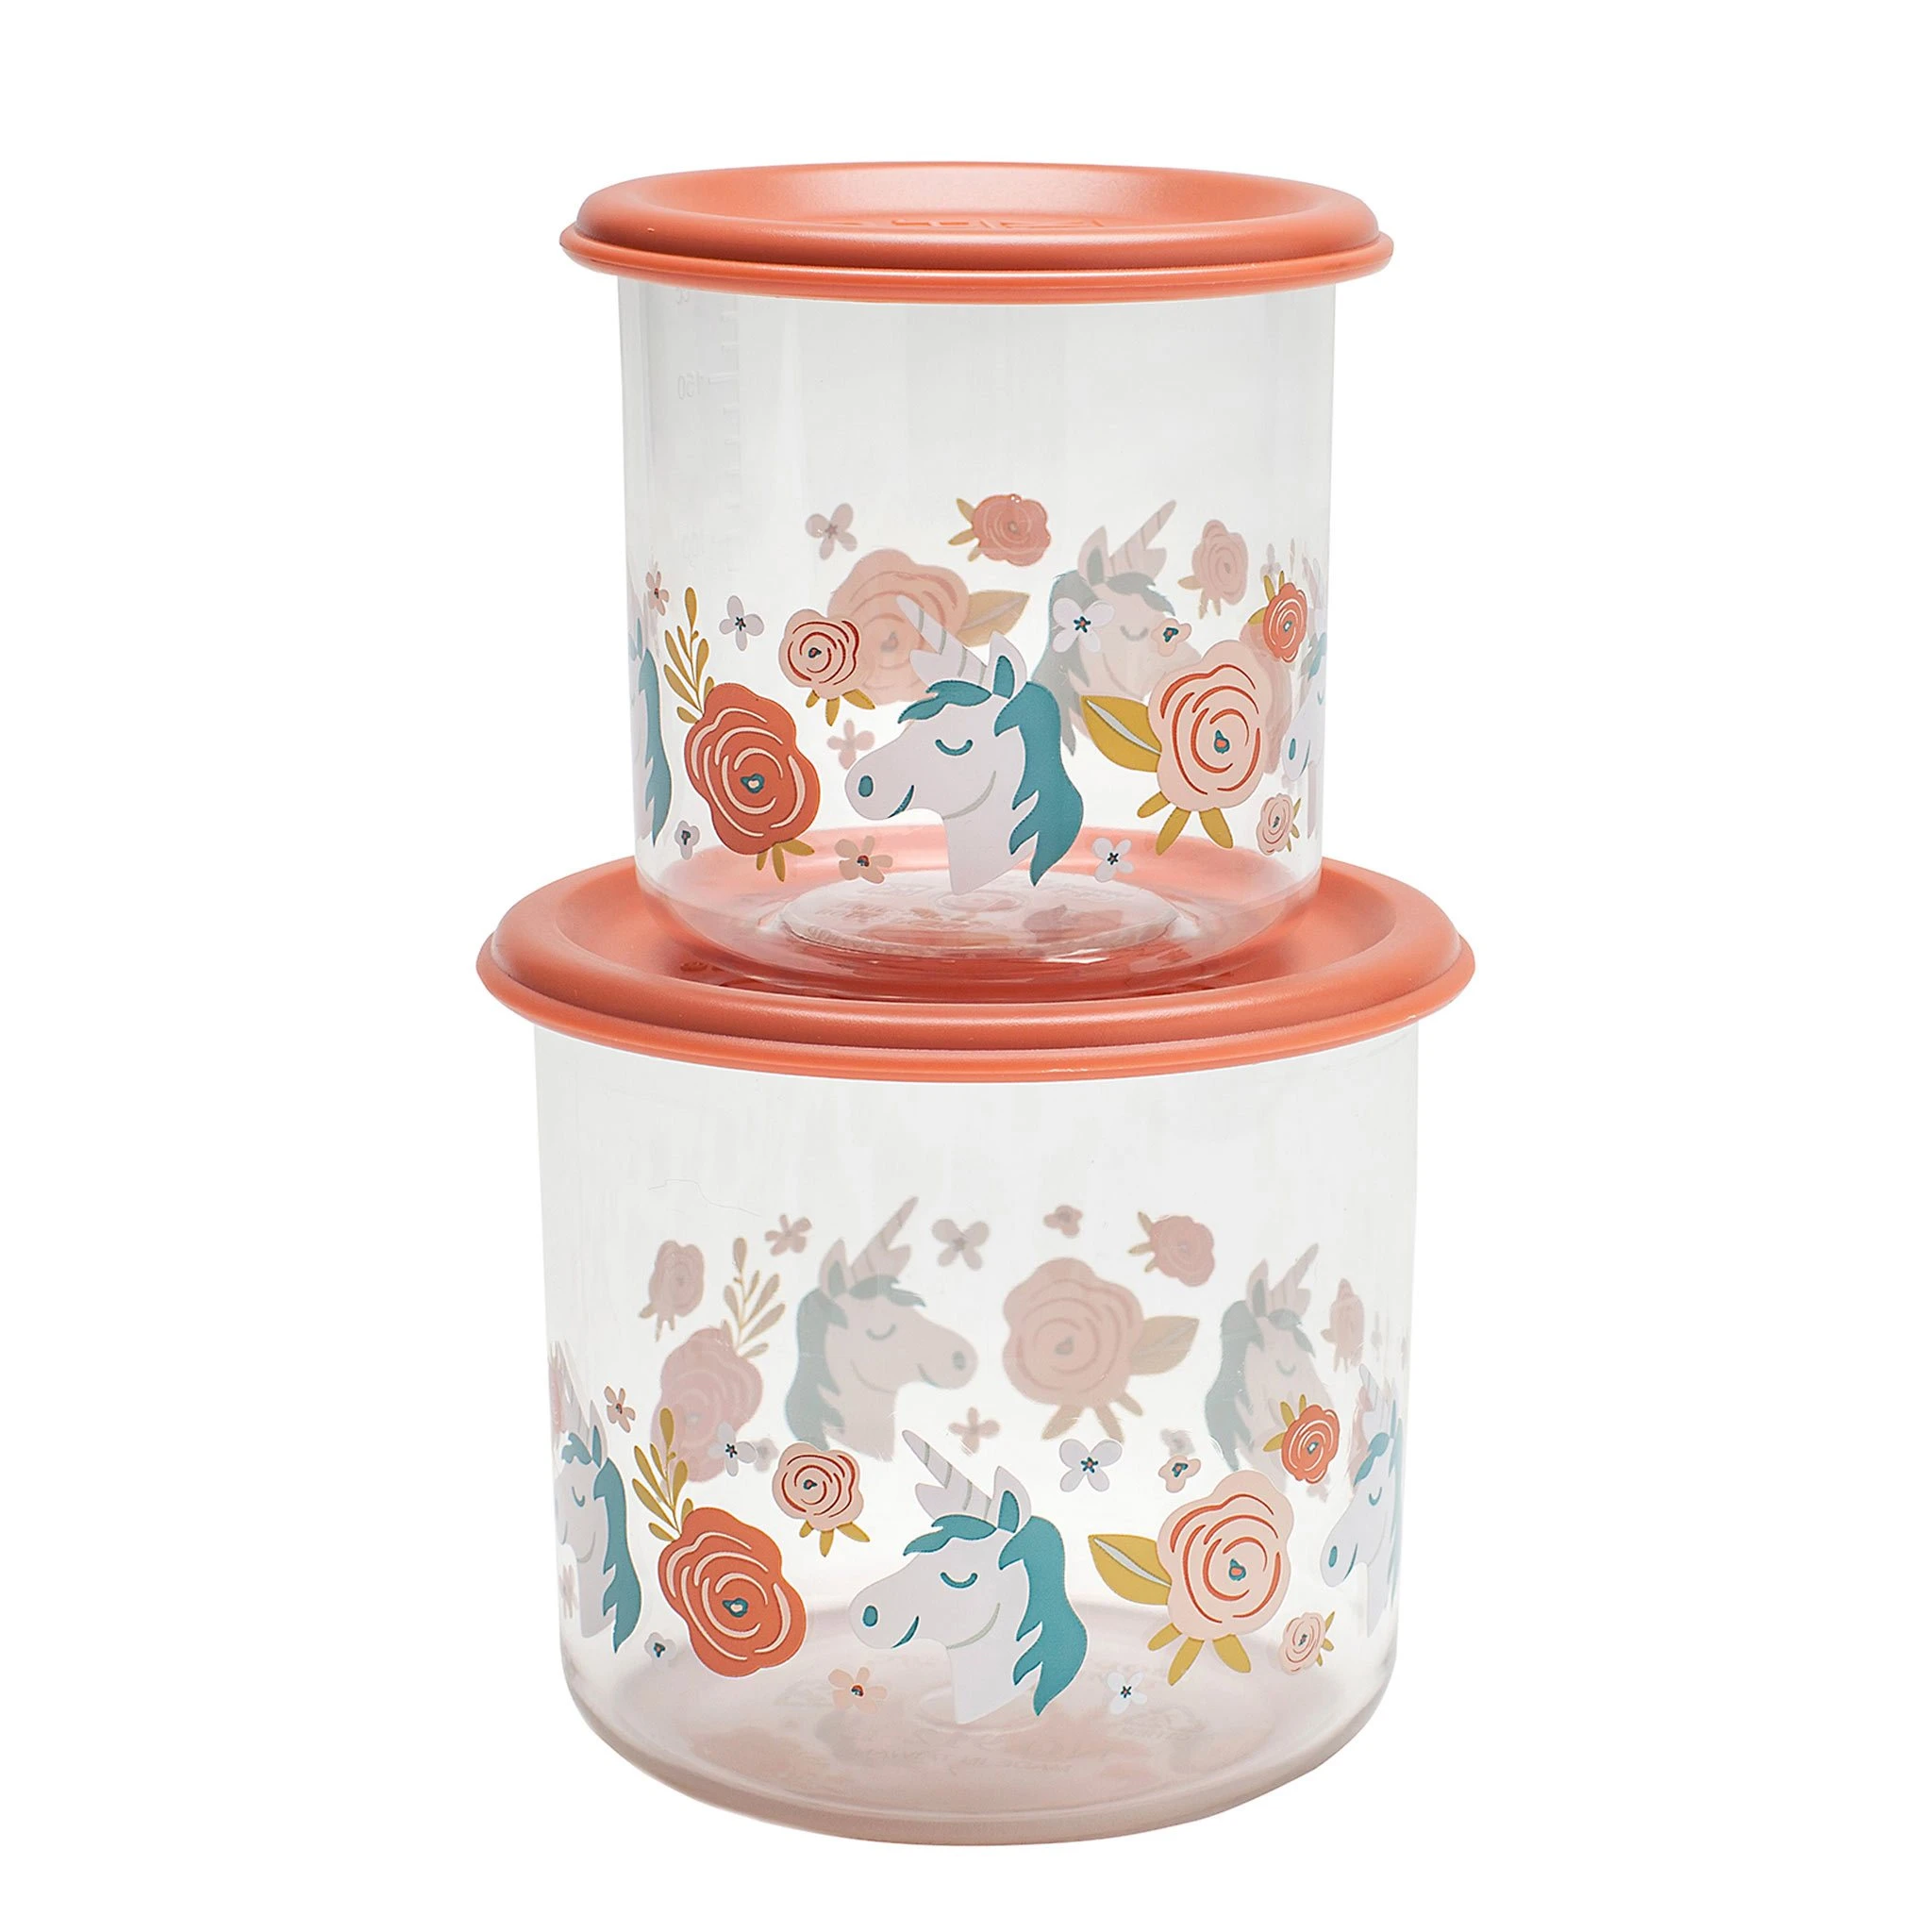 Sugarbooger Large Good Lunch Container